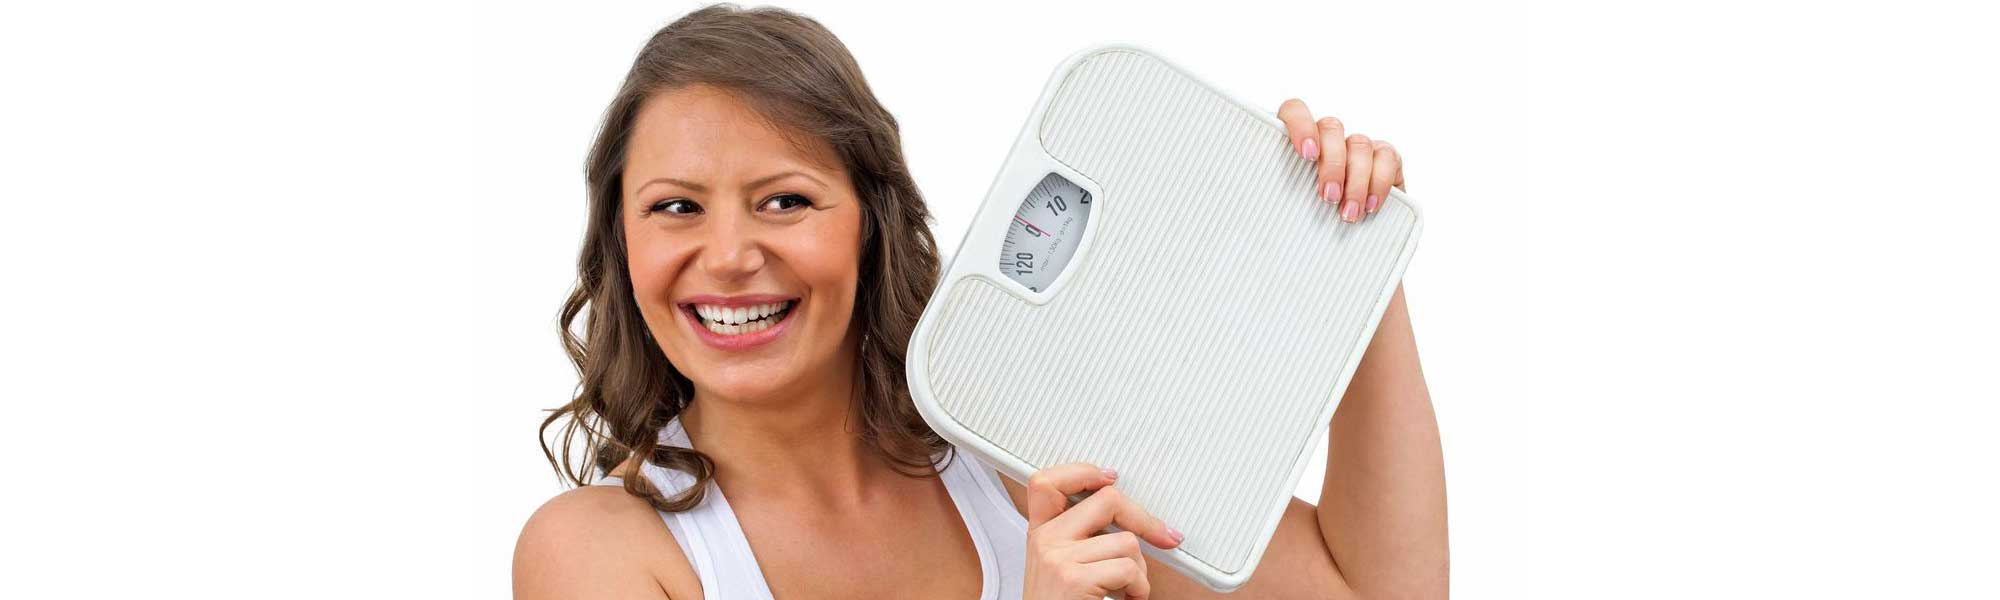 Woman Smiling with Bathroom Scale